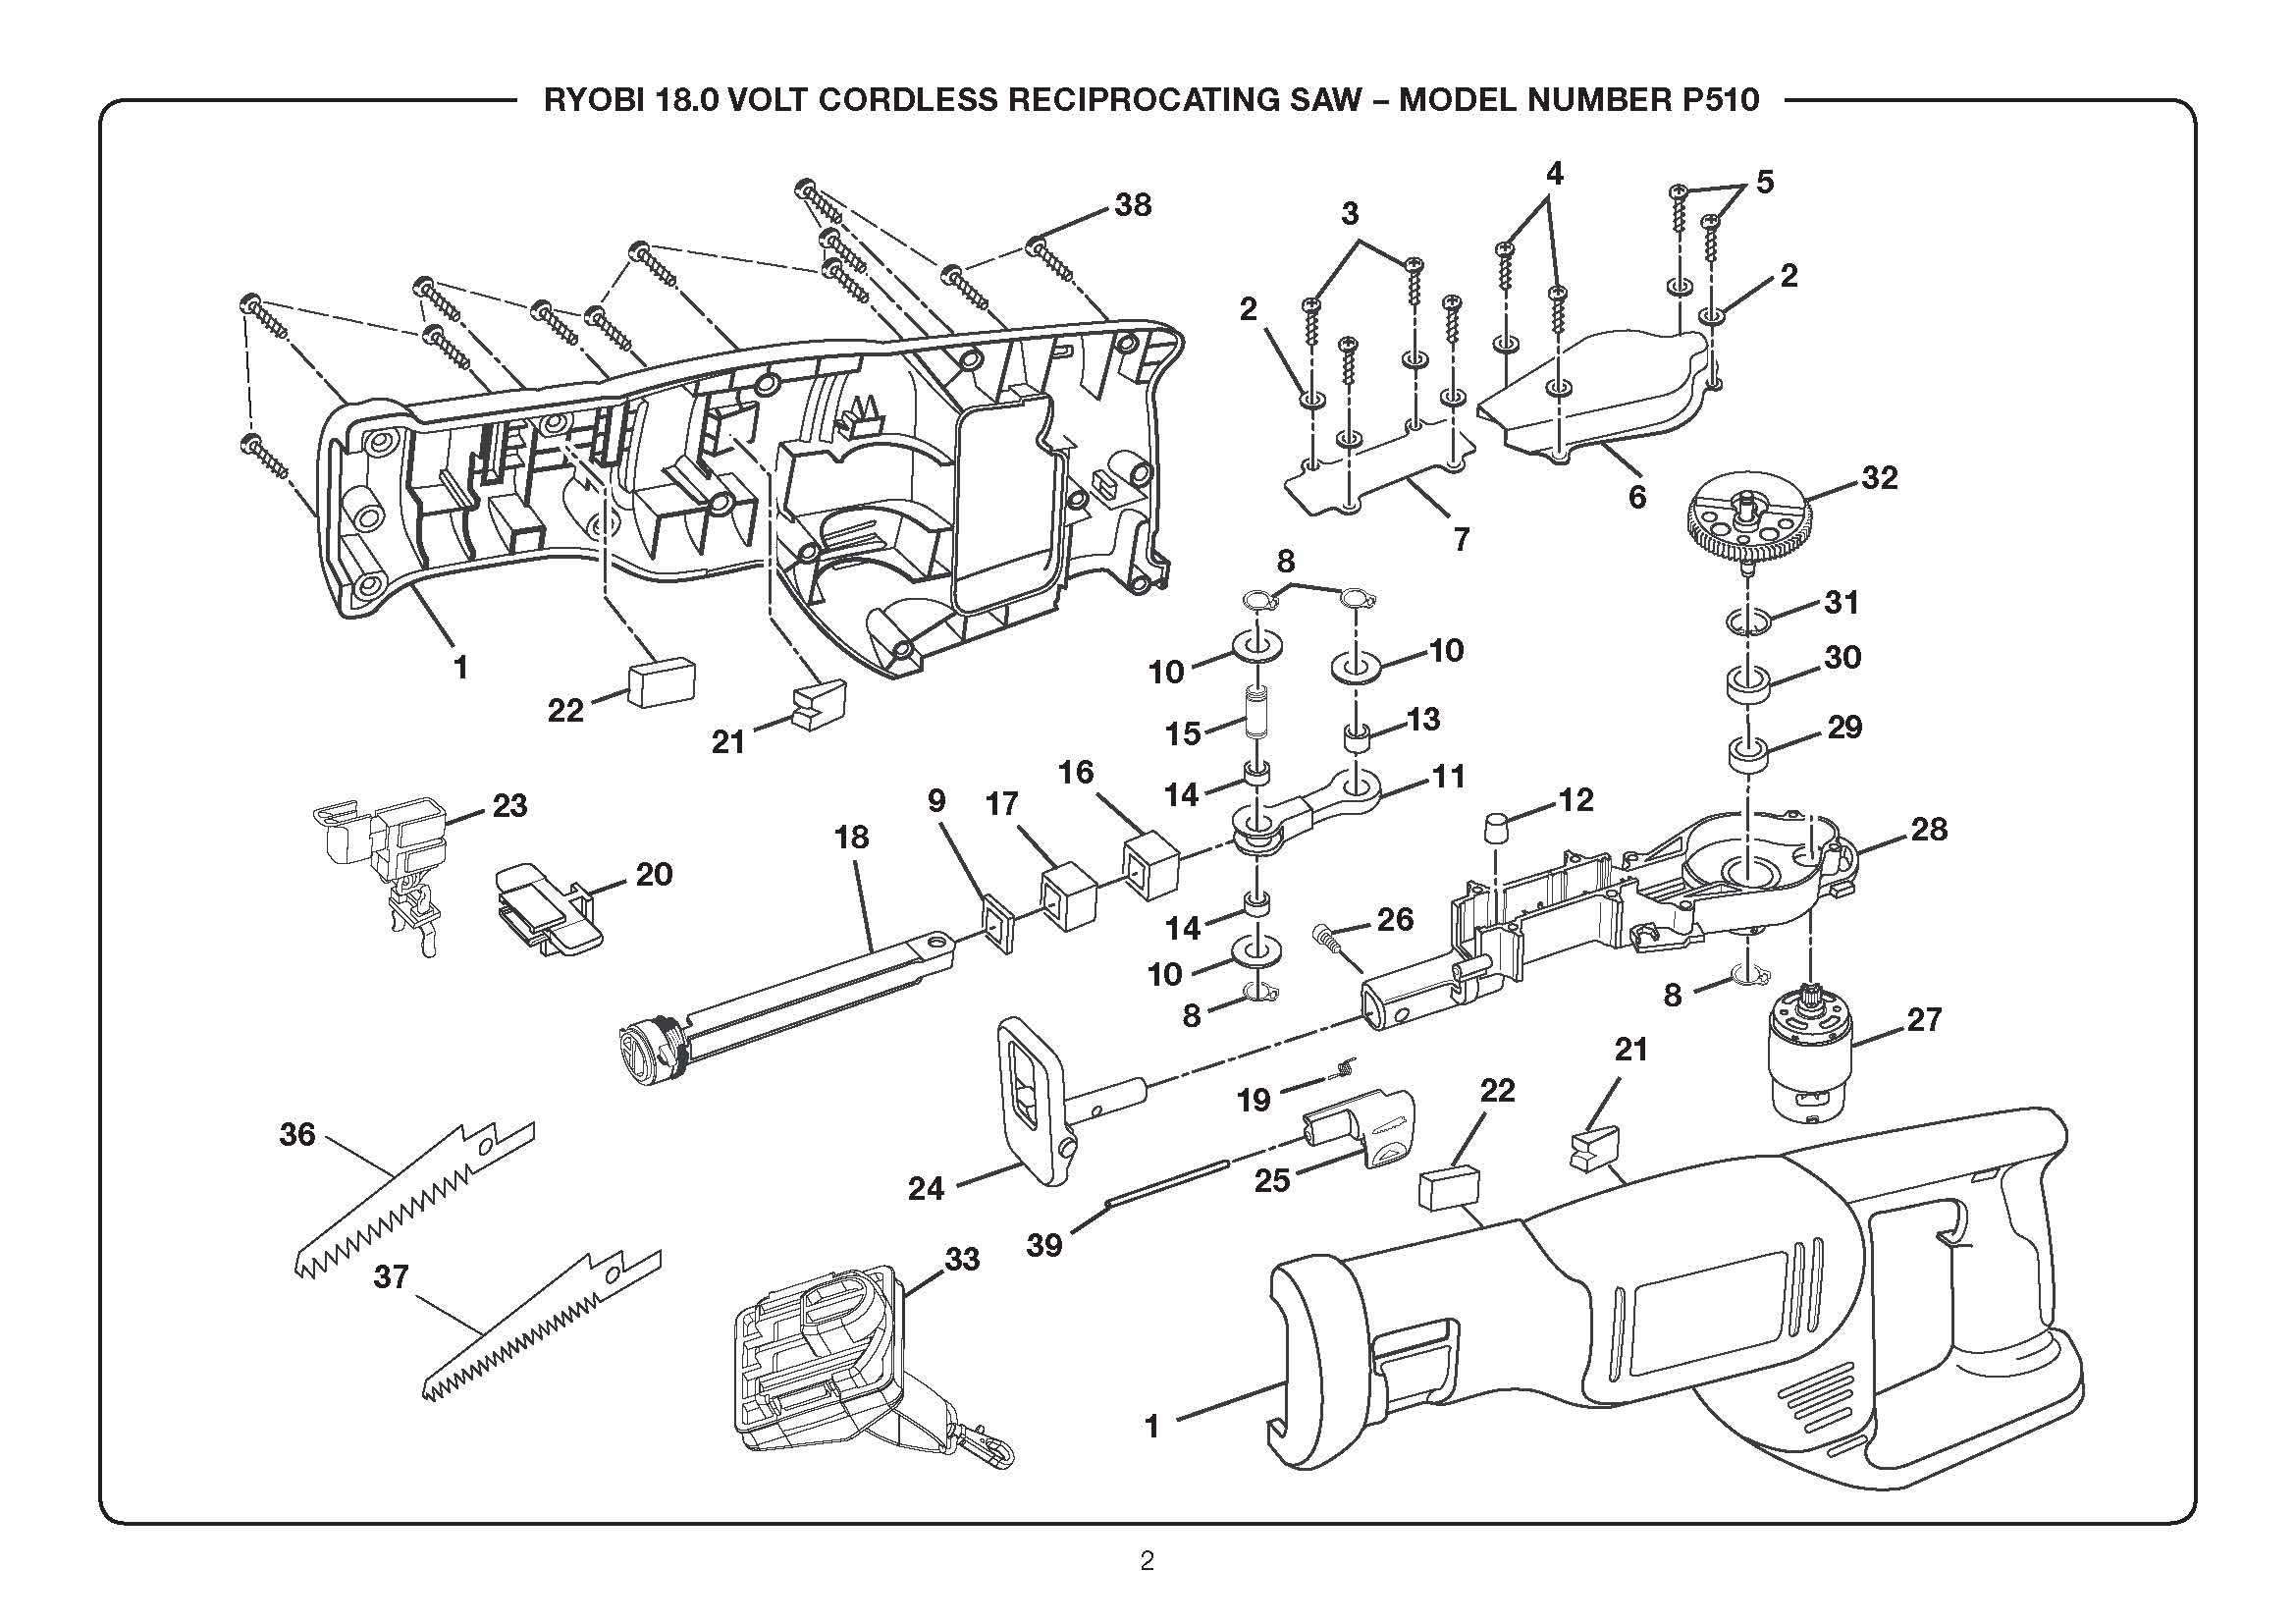 Reciprocating Saw Diagram Trusted Wiring Diagrams Milwaukee Sawzall P510 Ryobi Parts Power Tool De Walt Wire